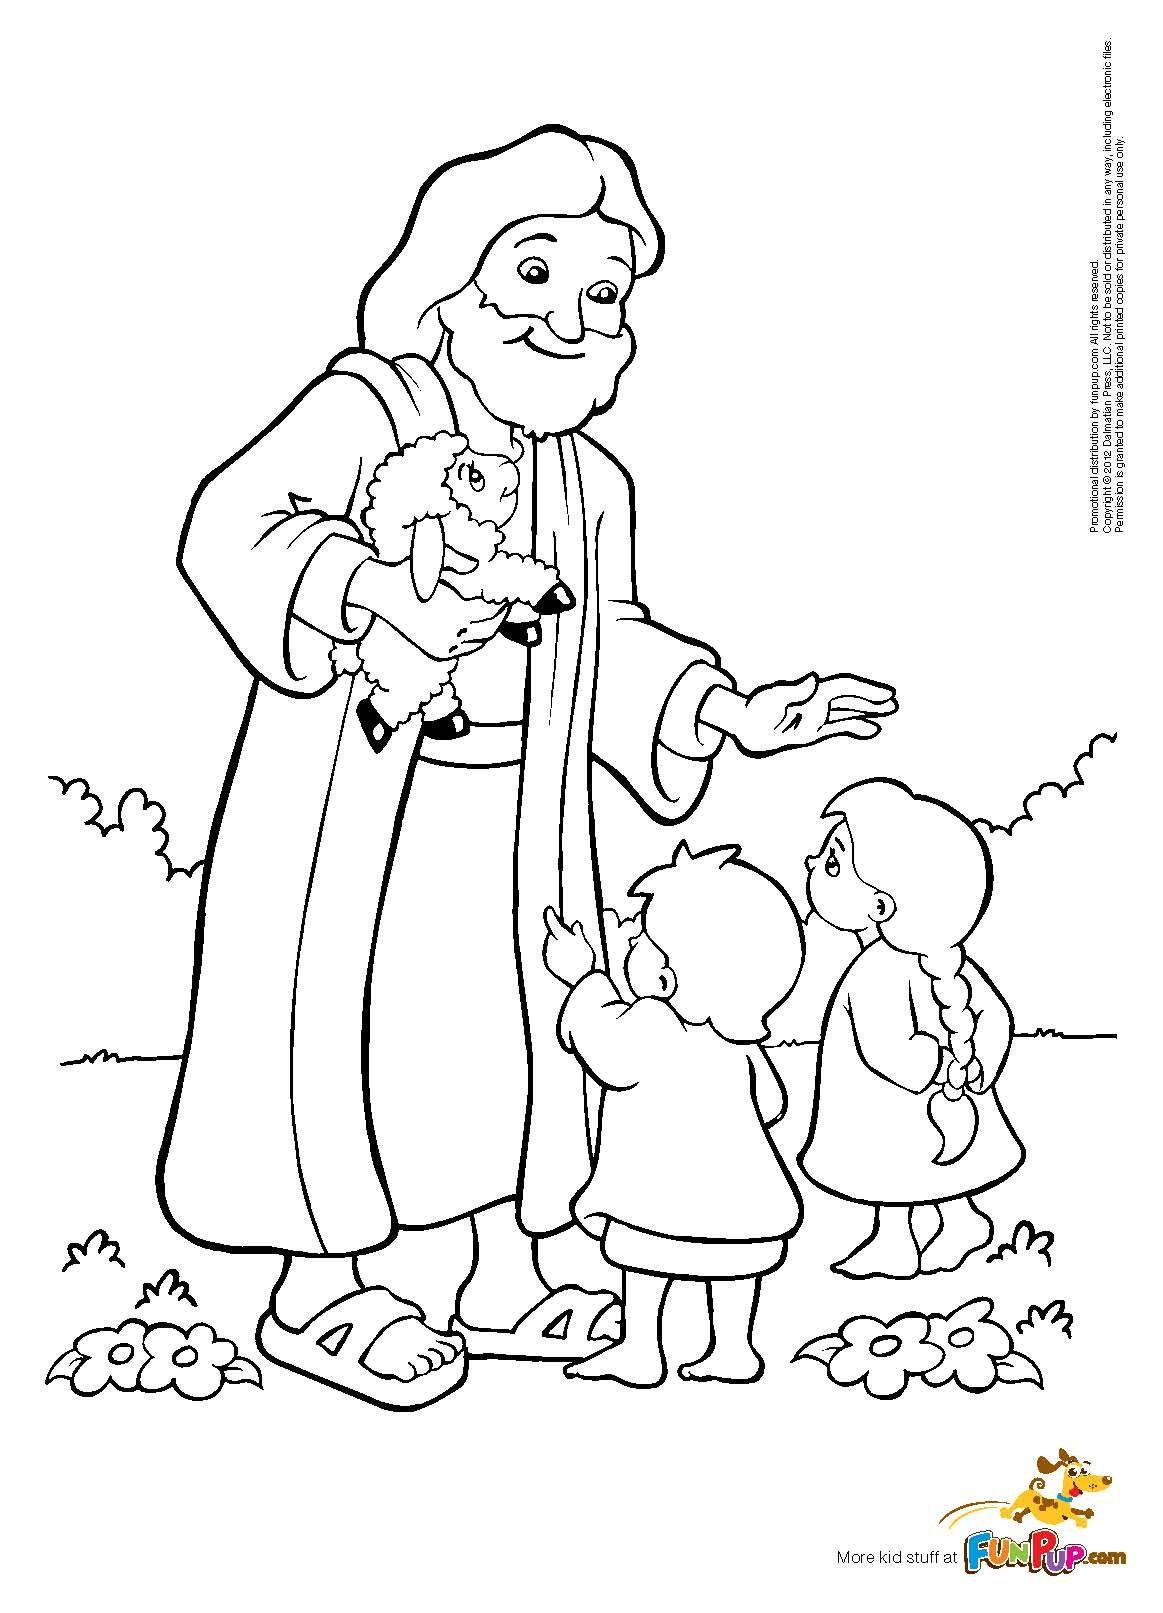 Happy Birthday Jesus Coloring Pages 08 Religion Coloring Pages Of Jesus